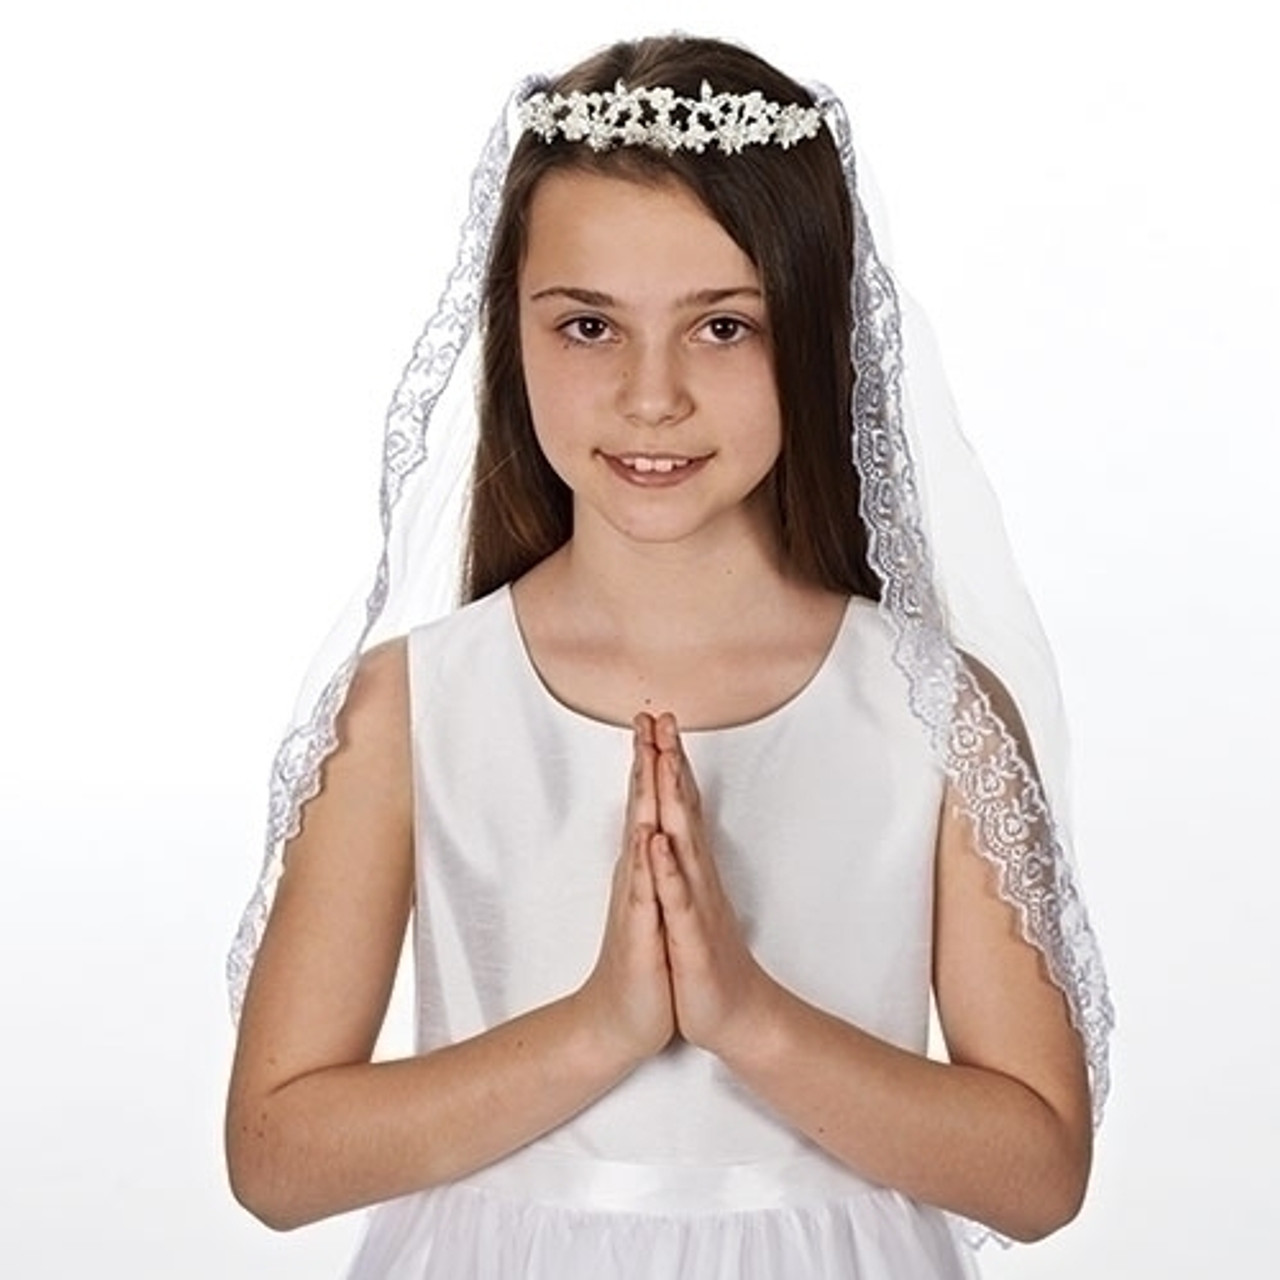 ce3ed387831e0 First Communion Veil tiara style with pearl and rhinestone flowers on veil  with lace edge measures